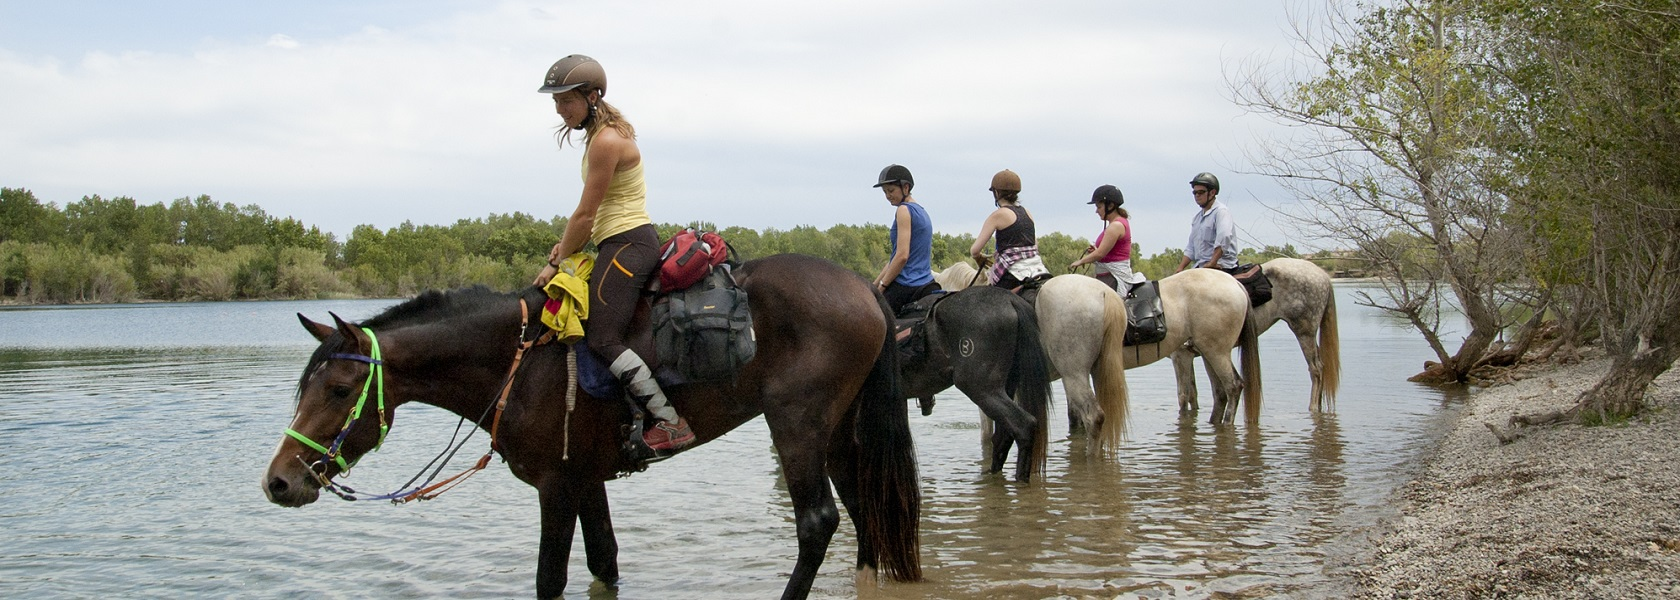 Activities on land in Costa Brava - Horse riding